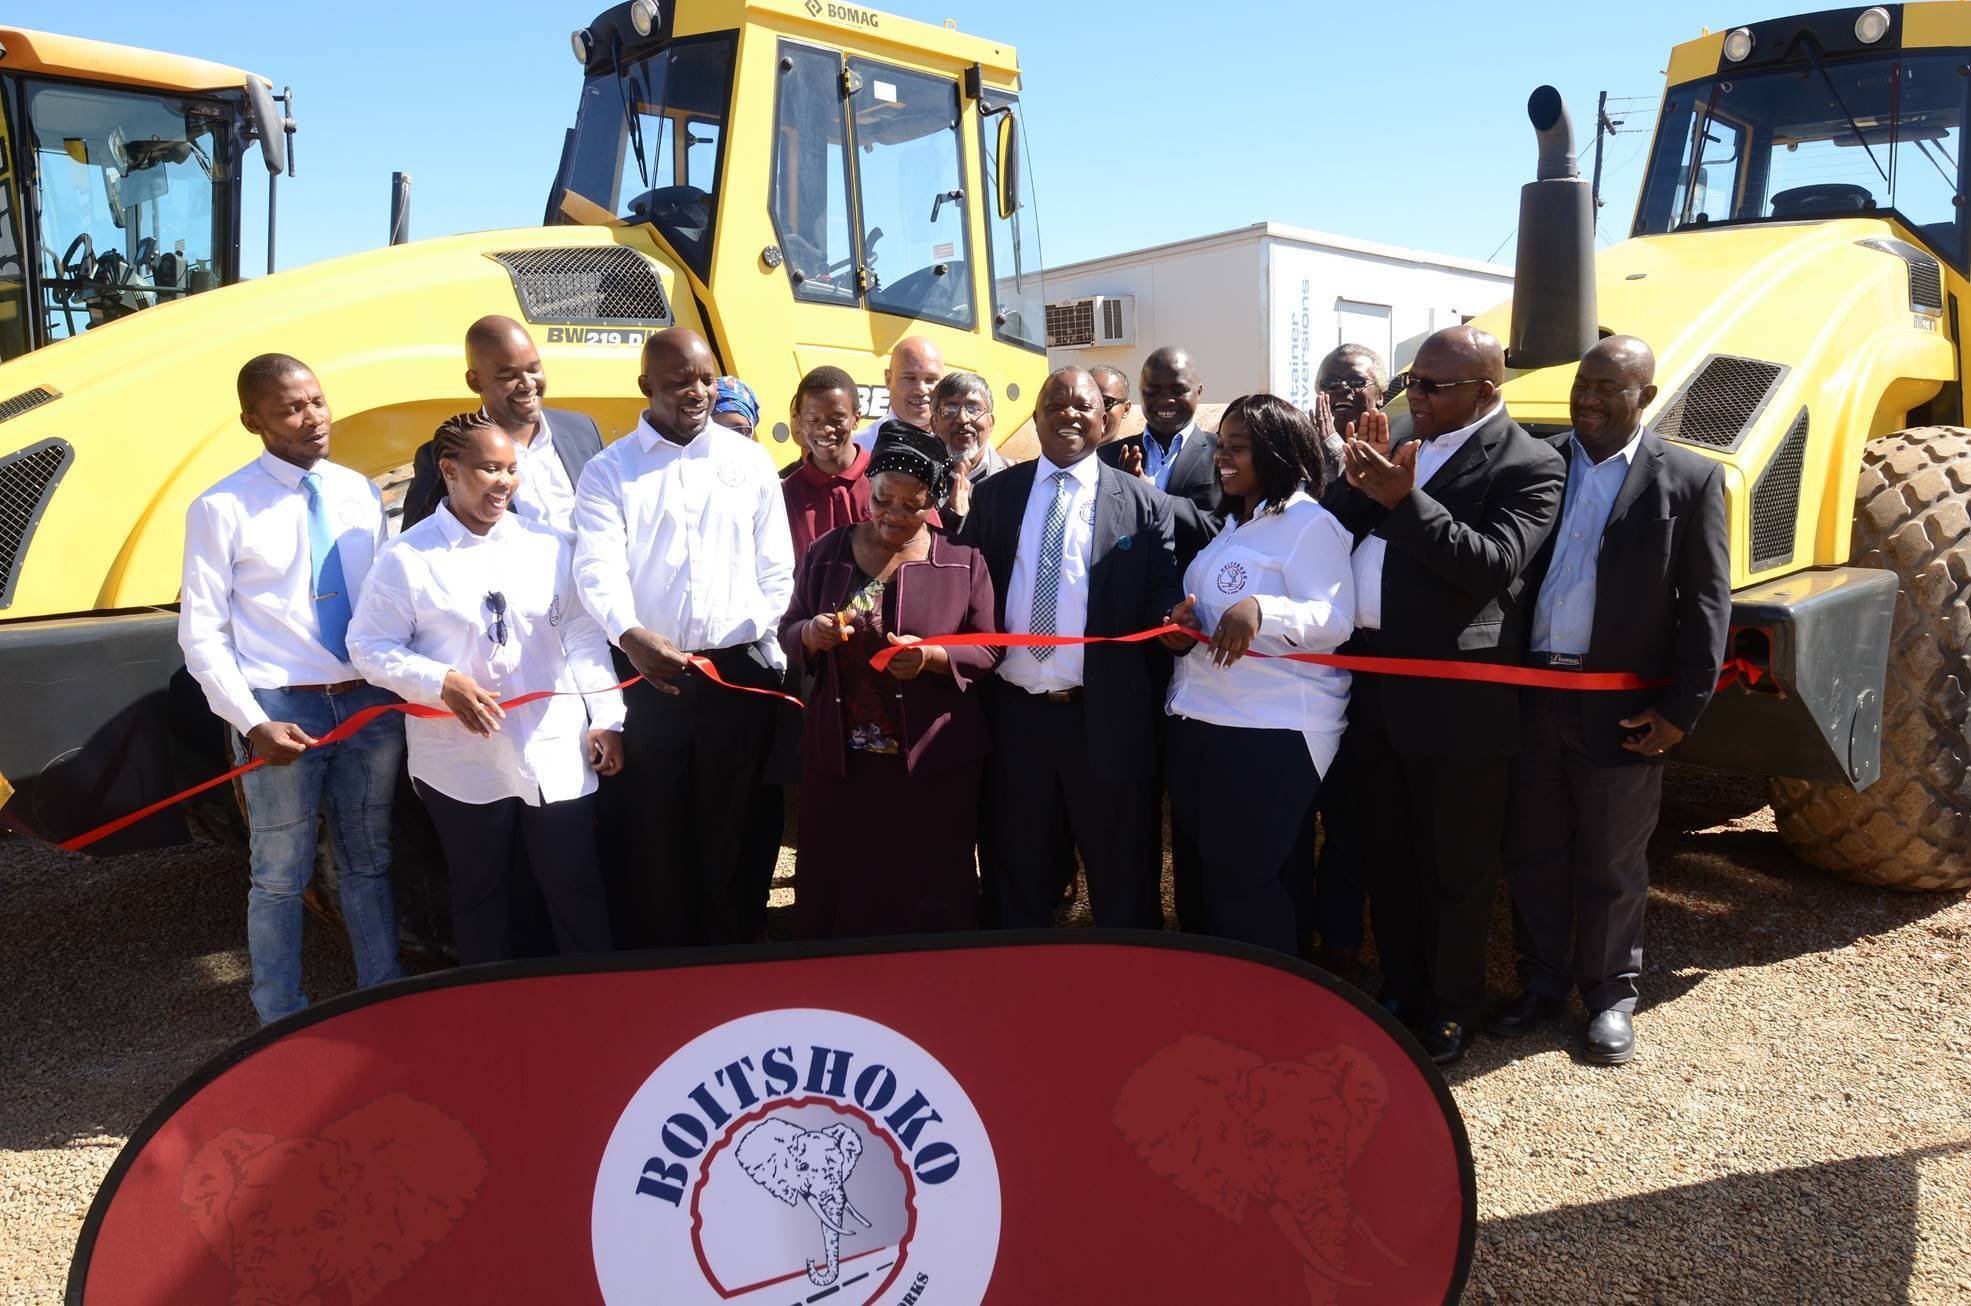 "Founding member of Boitshoko Road Surfacing and Civil Works, Mrs Makume (centre), cuts the celebratory ribbon along with managing director, Dr N Phillip Makume and staff. ""With this new relationship and with Bell and SANRAL's support, we feel blessed to now have the ability to compete meaningfully in this challenging road construction industry,"" says Dr Makume."